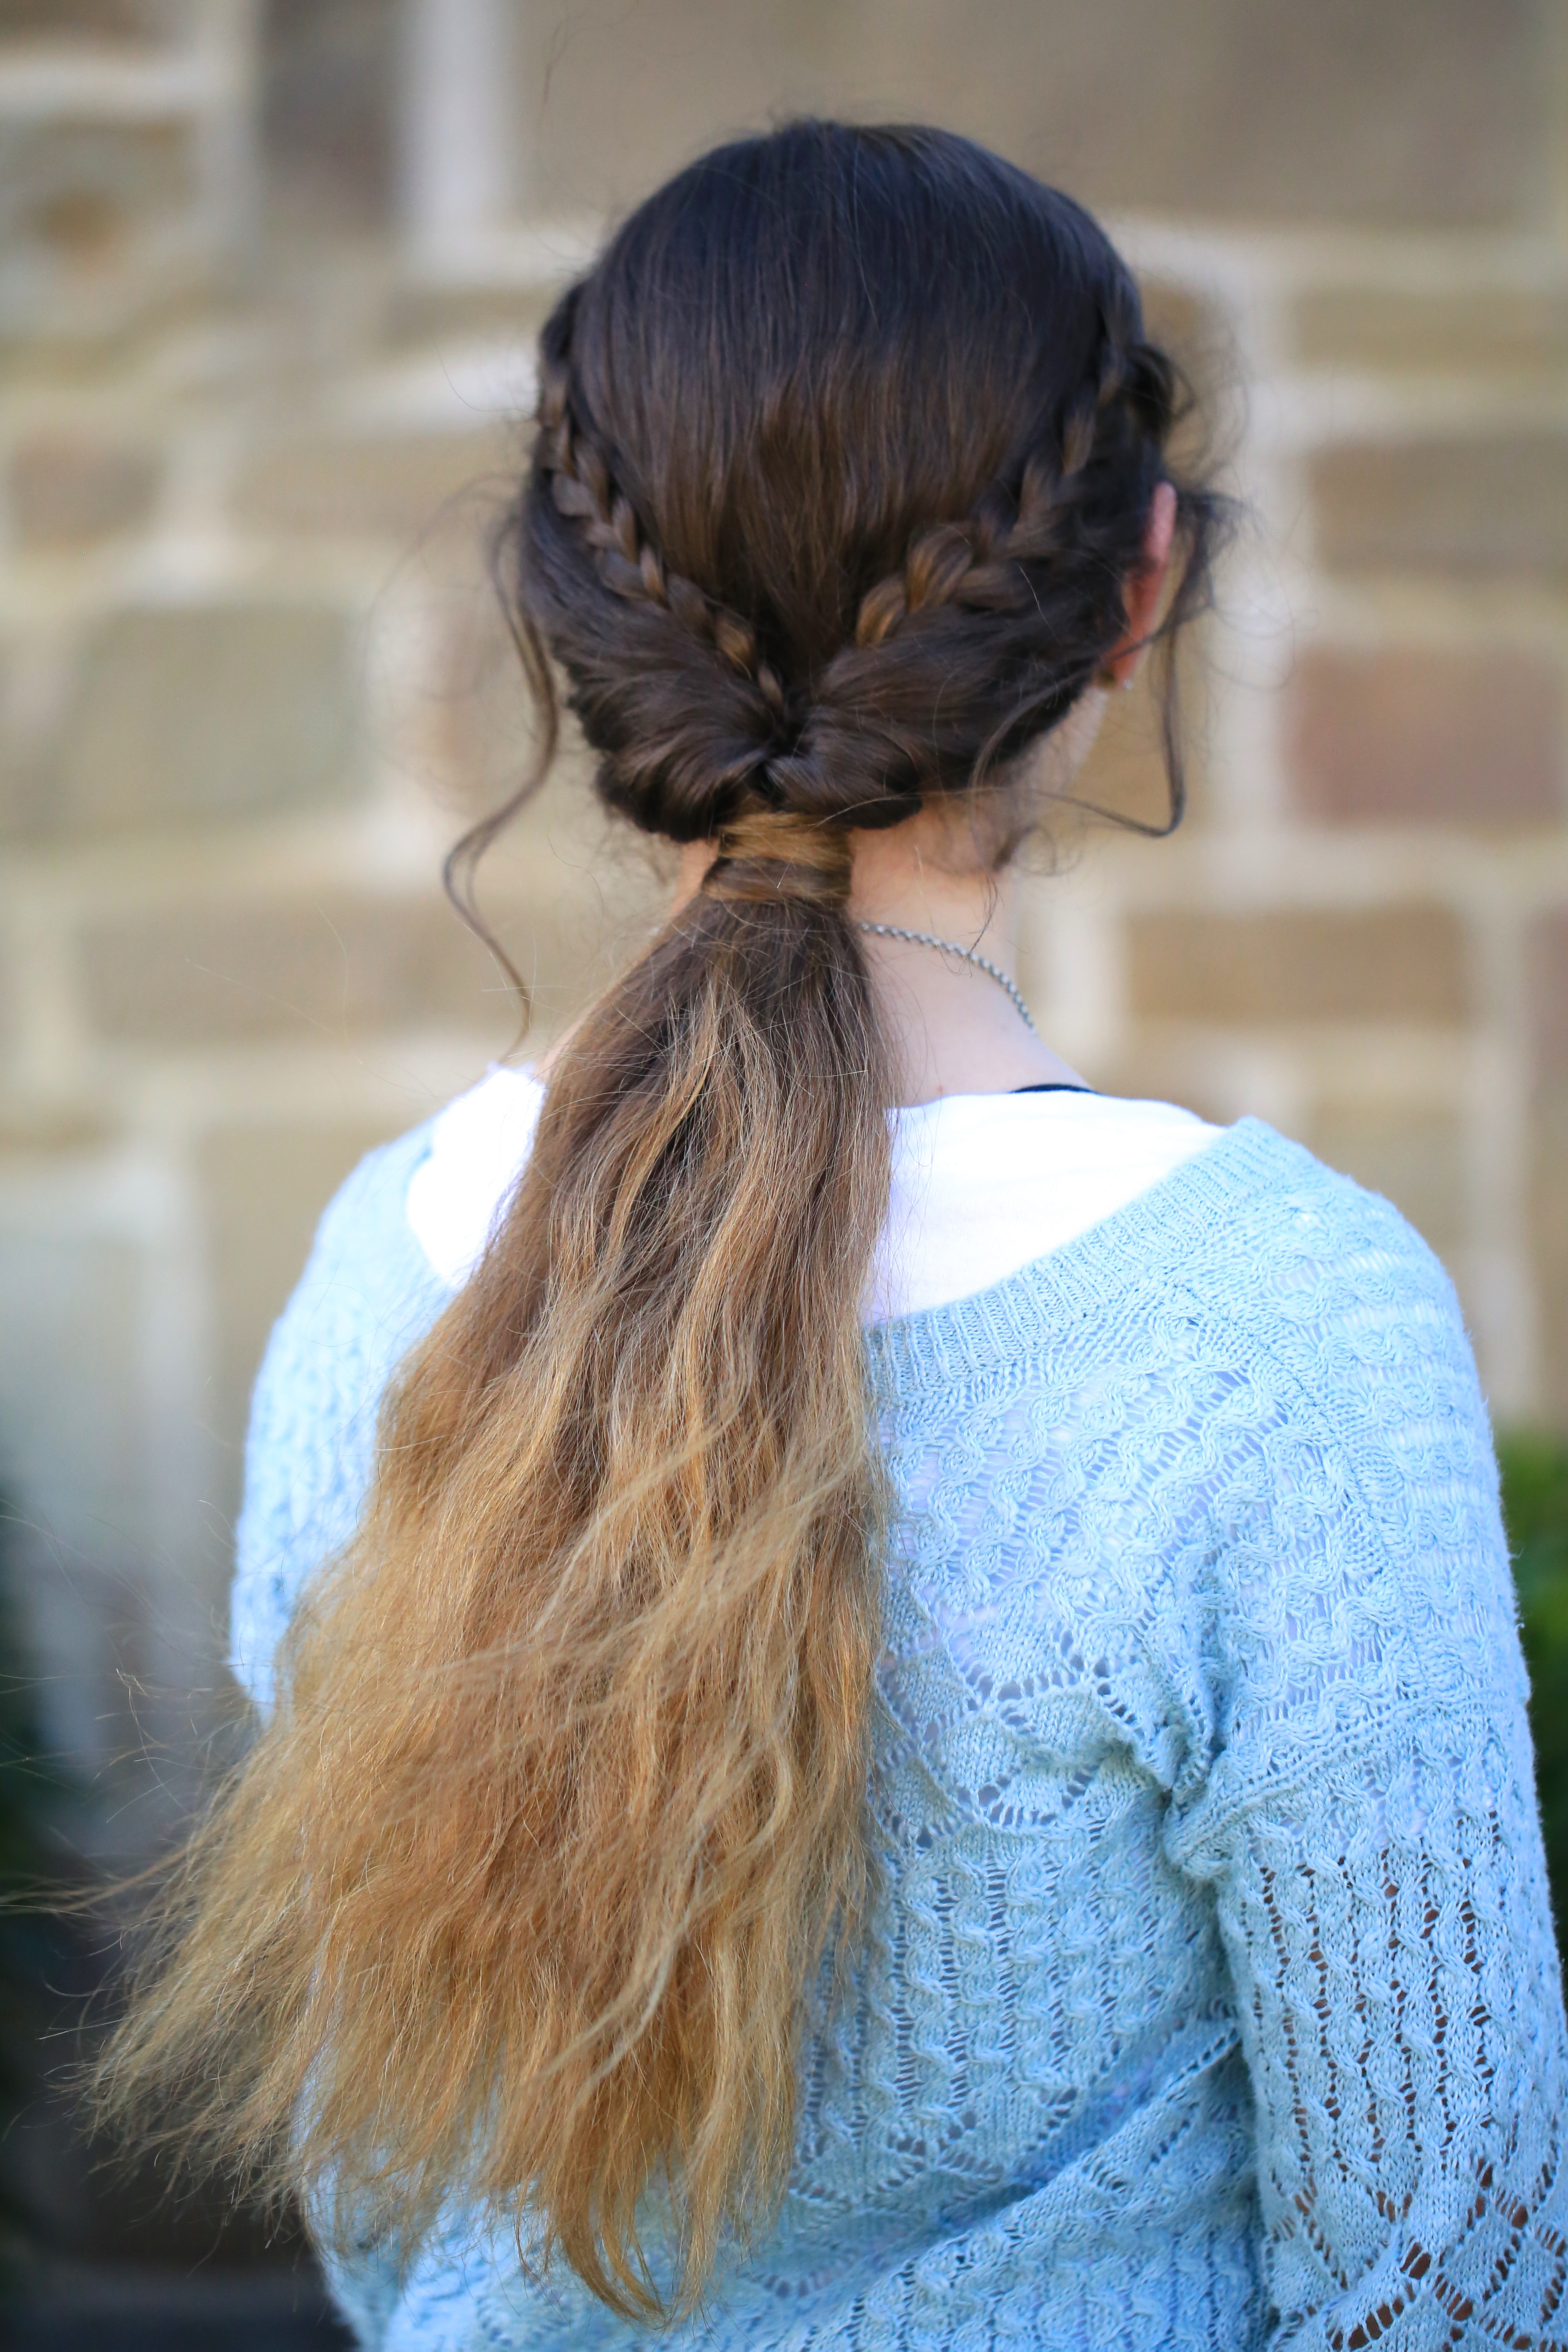 Best ideas about Pretty Girls Hairstyles . Save or Pin Braid Flip bo Hairstyle Now.